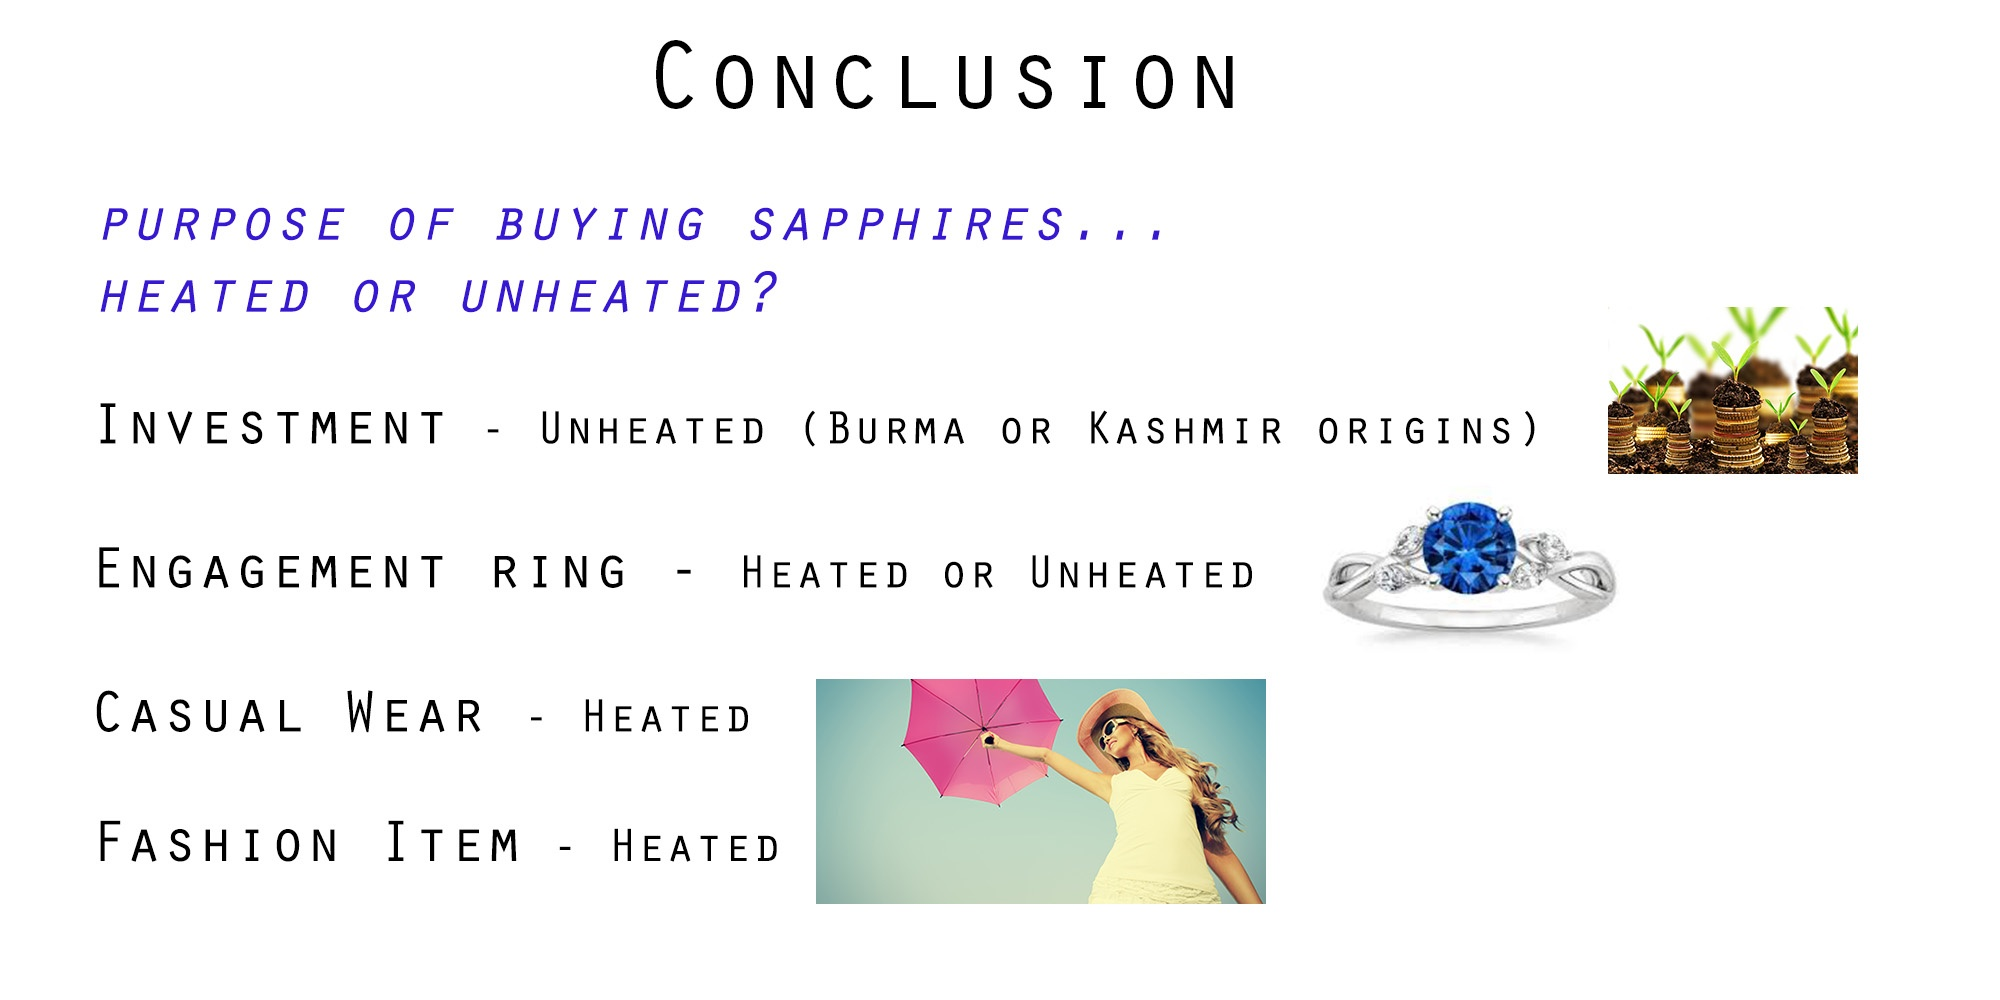 Conclusion on Heated and Unheated sapphire